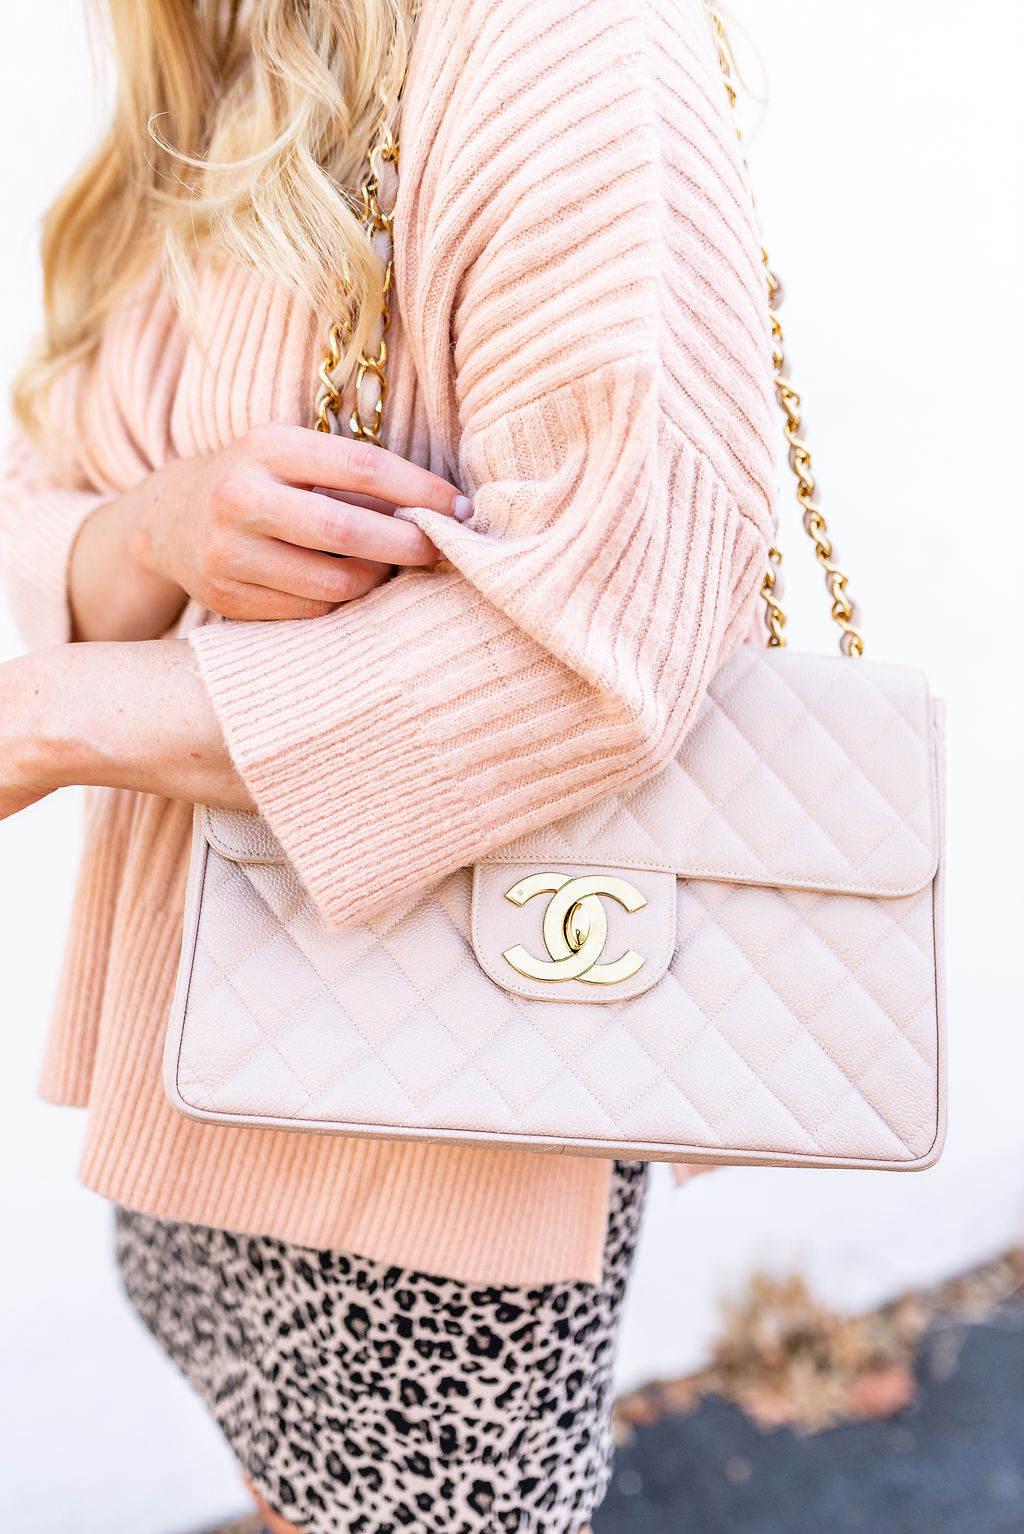 vintage-chanel-classic-flap-strawberry-chic